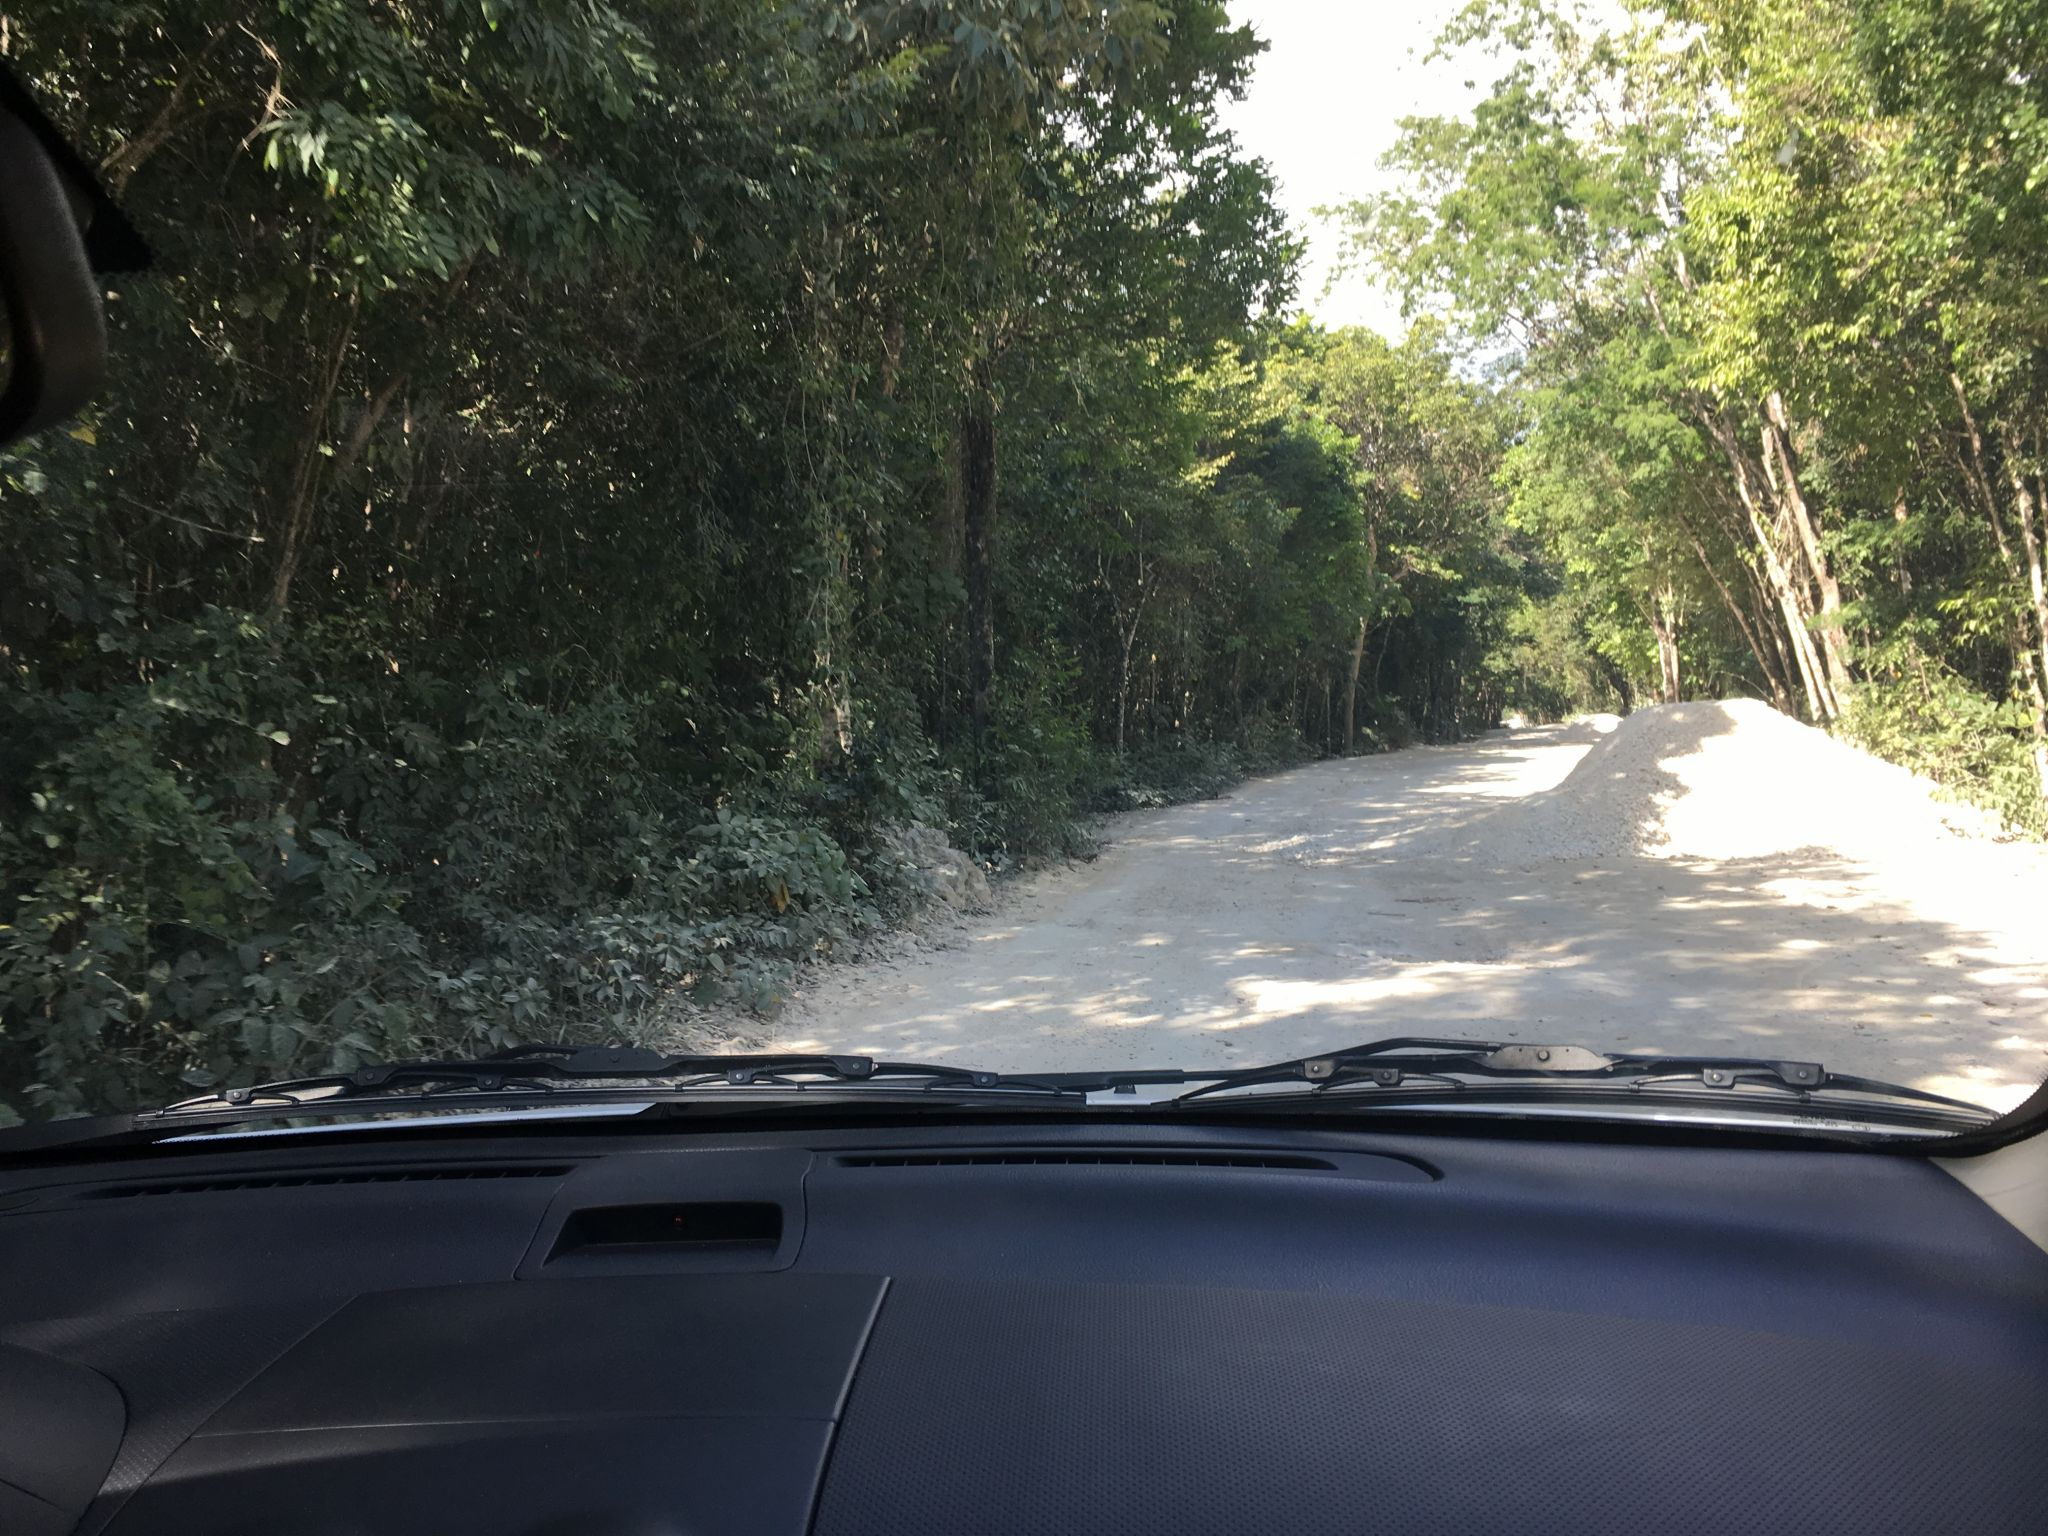 The roads aren't in the best shape in Mexico